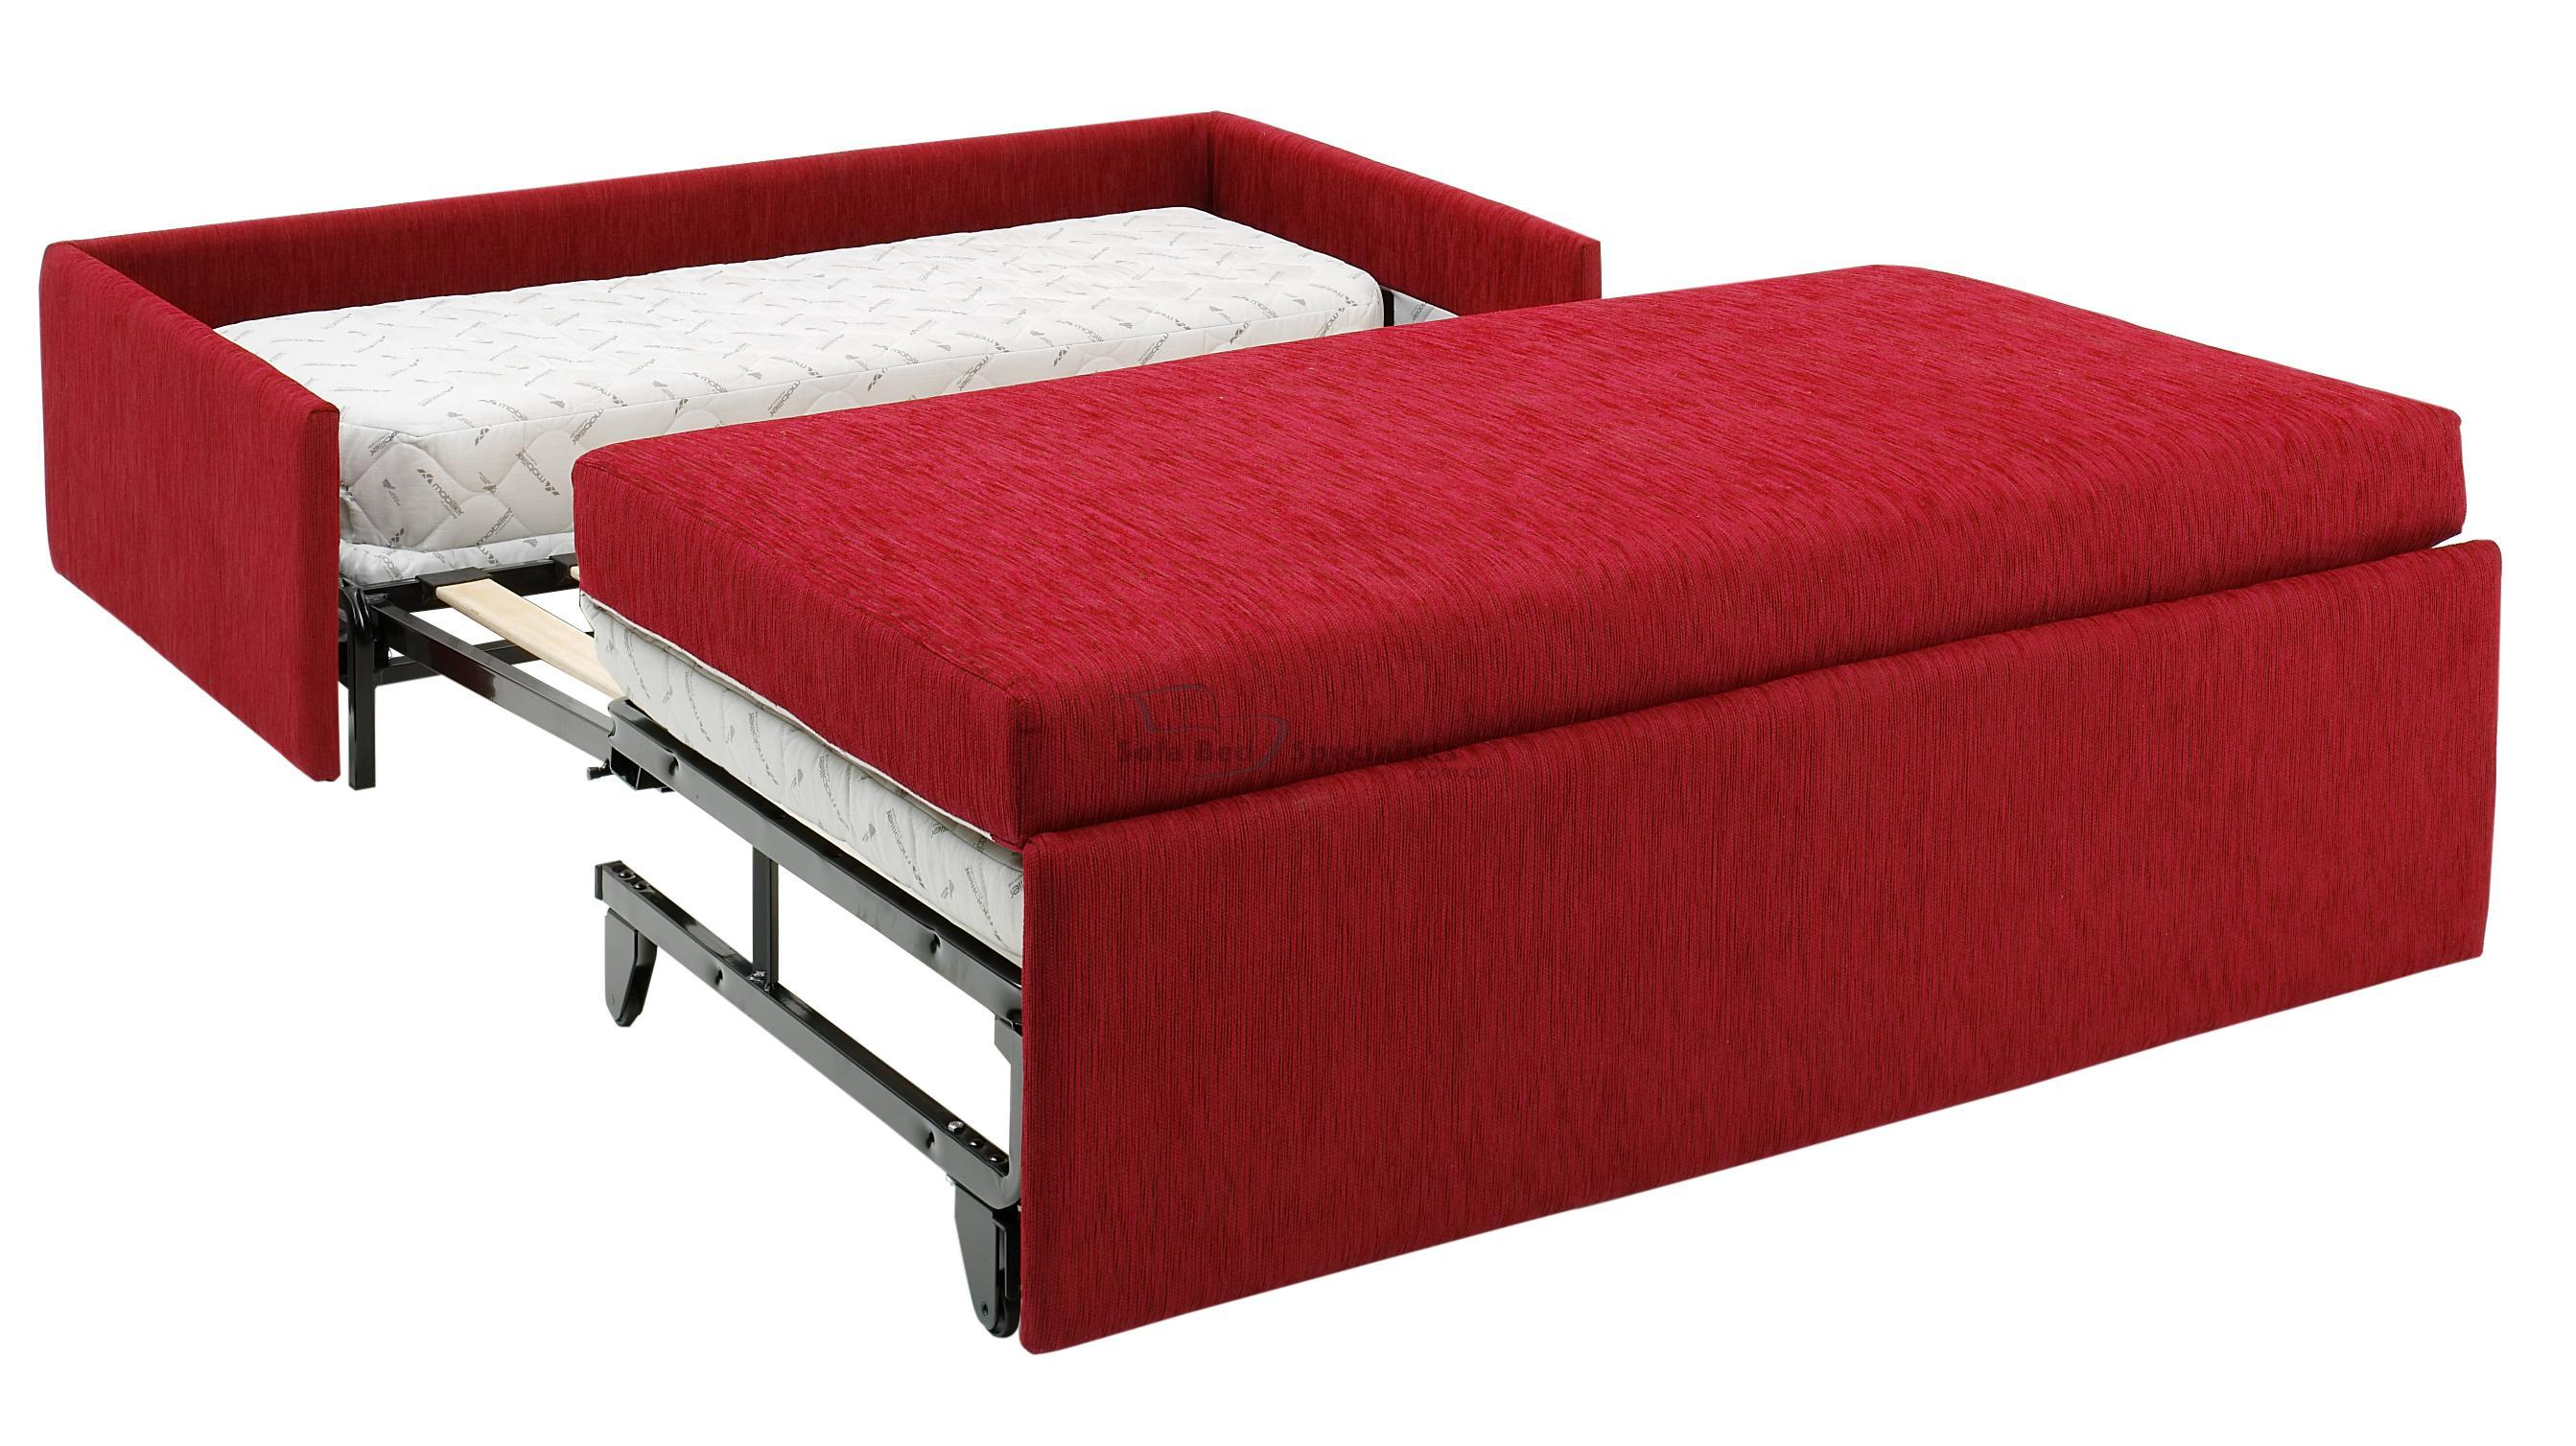 folding ottoman single sofa bed review wooden furniture set price sofabed with timber slats specialists